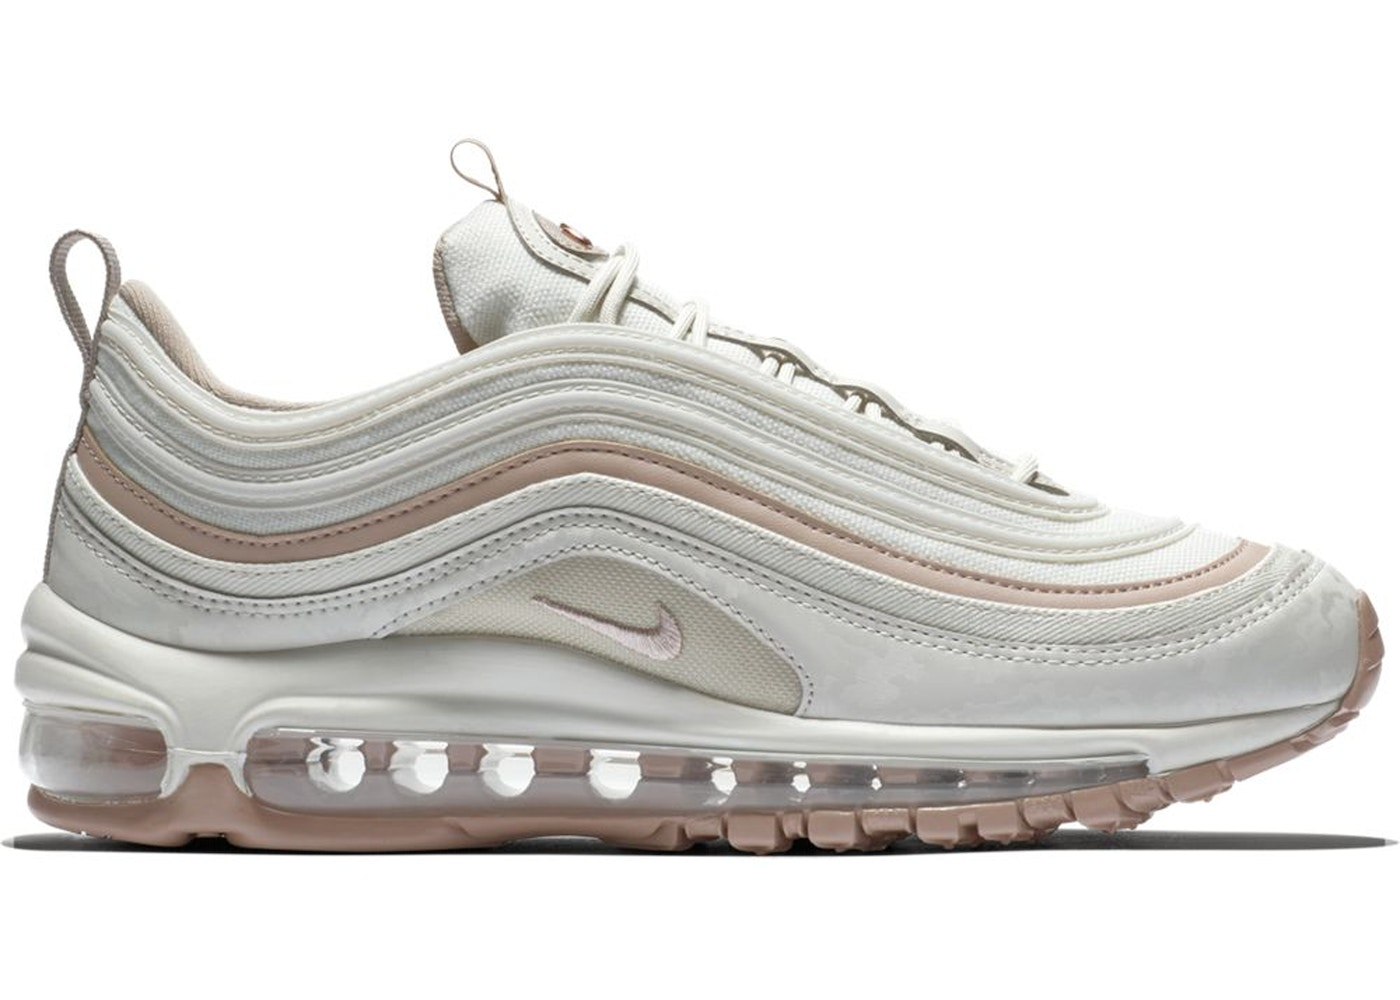 57677a69d6 Sell. or Ask. Size: 7W. View All Bids. Air Max 97 Light Bone Diffused Taupe  ...